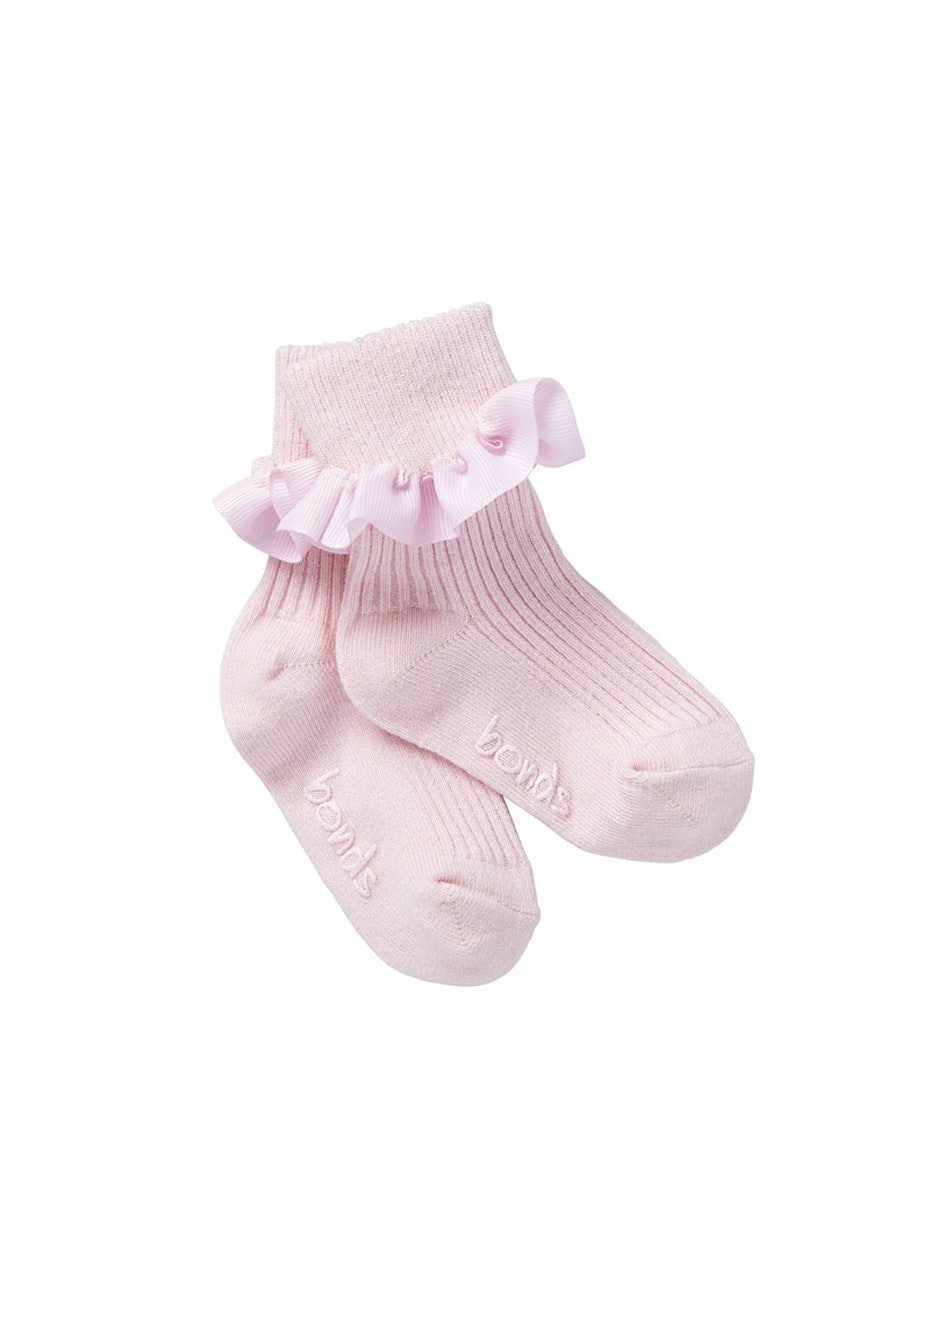 BONDS - Baby Party Cuff Sock - Sweet Pink